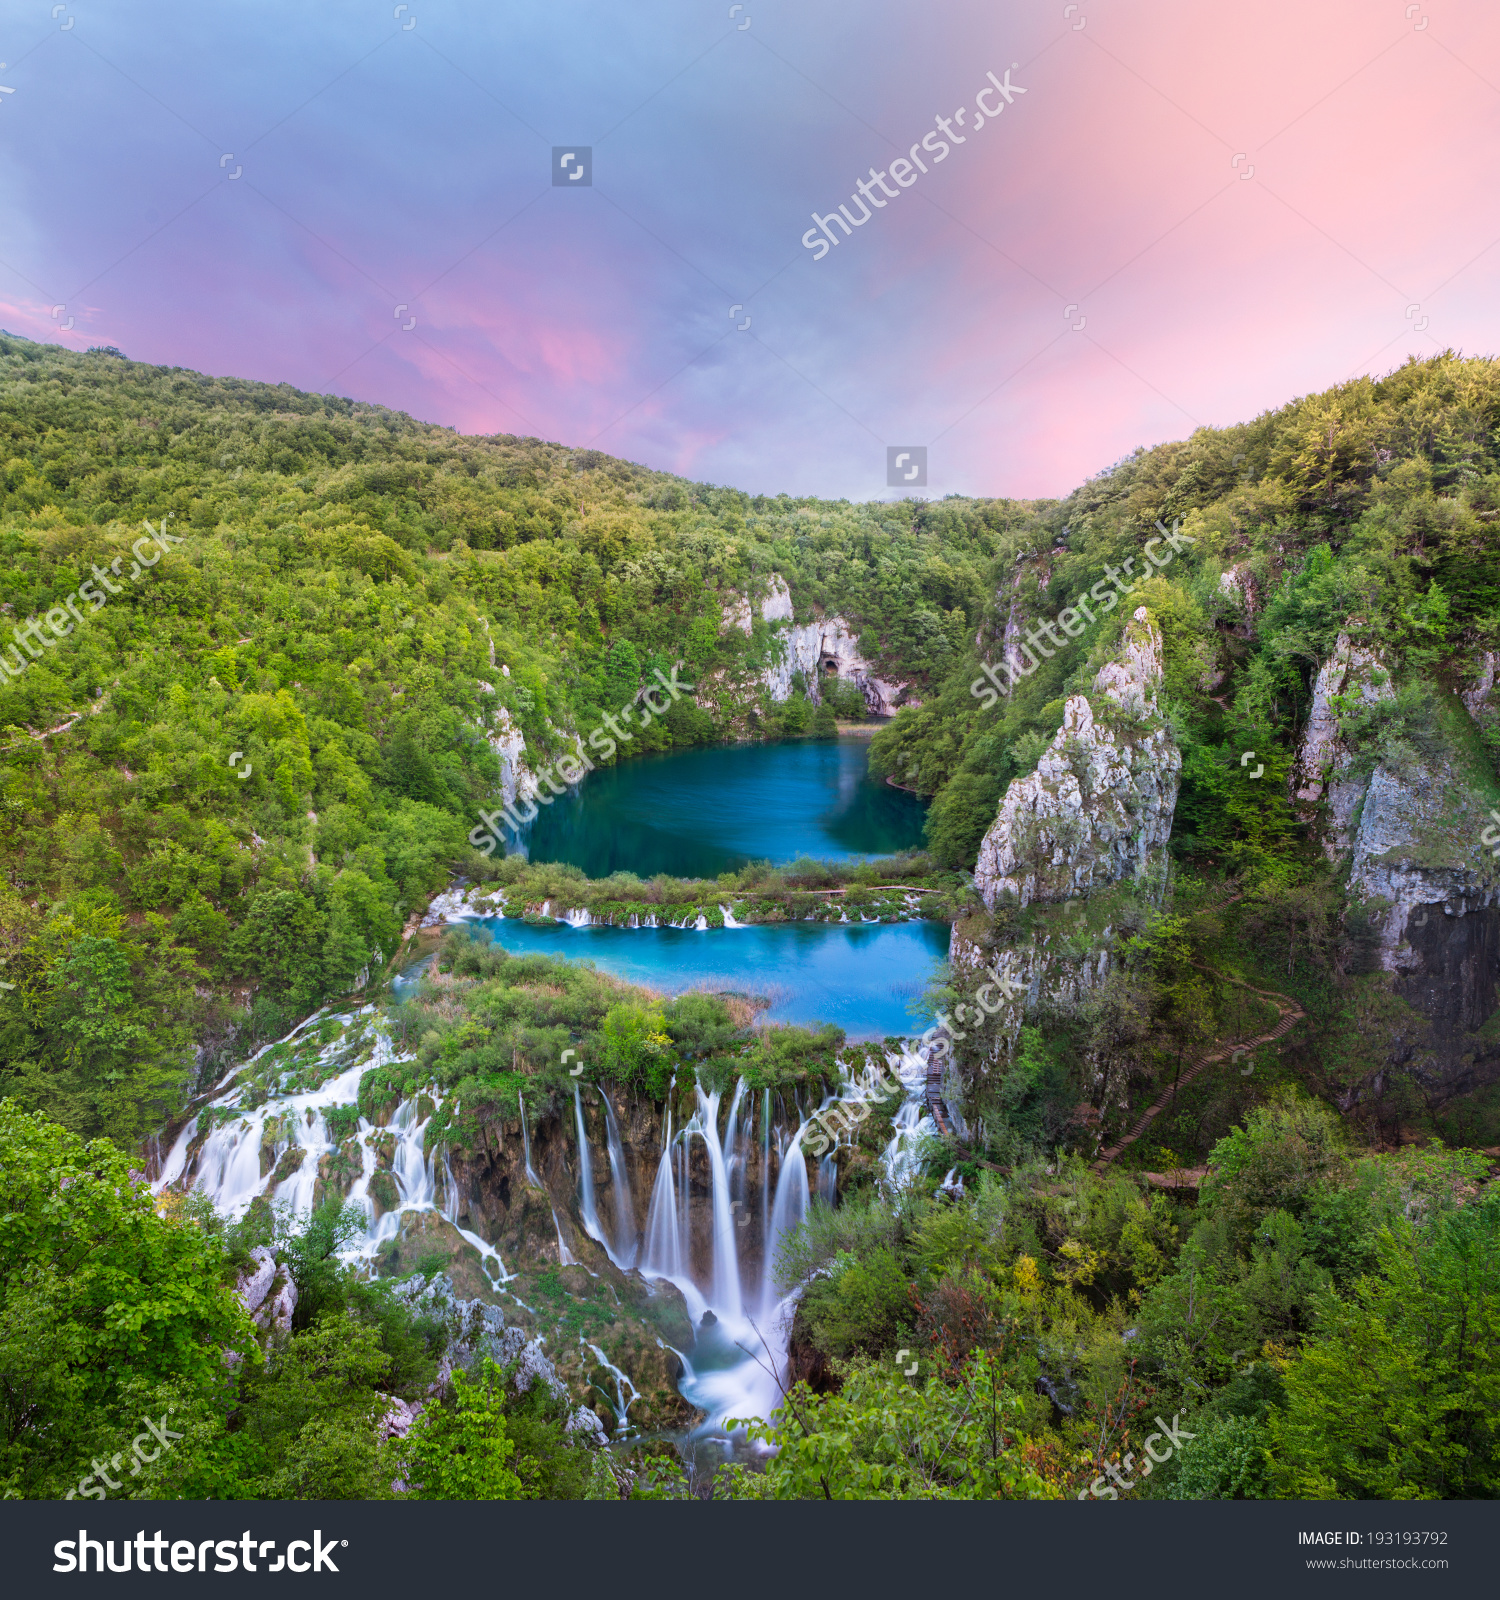 Plitvice Lakes National Park clipart #11, Download drawings